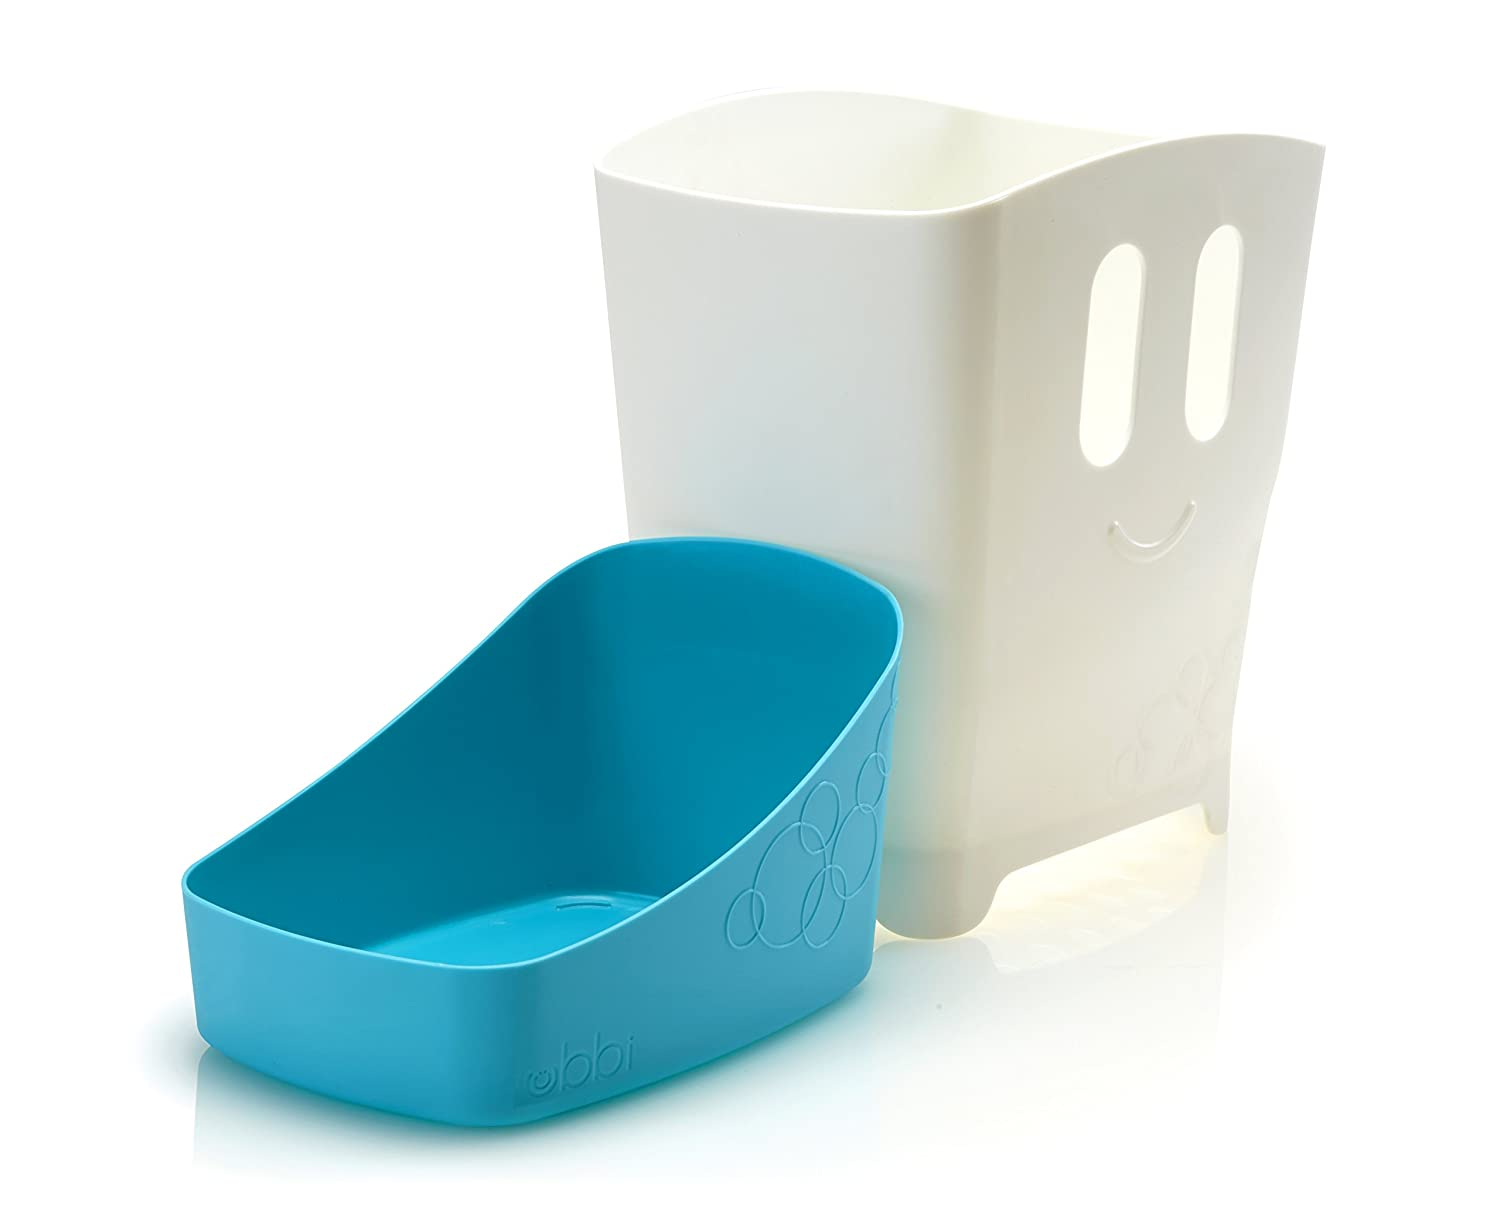 Blue Baby Ubbi Freestanding Bath Toy Organizer Bath Caddy with Removable Drying Rack Bin and Scoop for Bath Toys for Toddlers